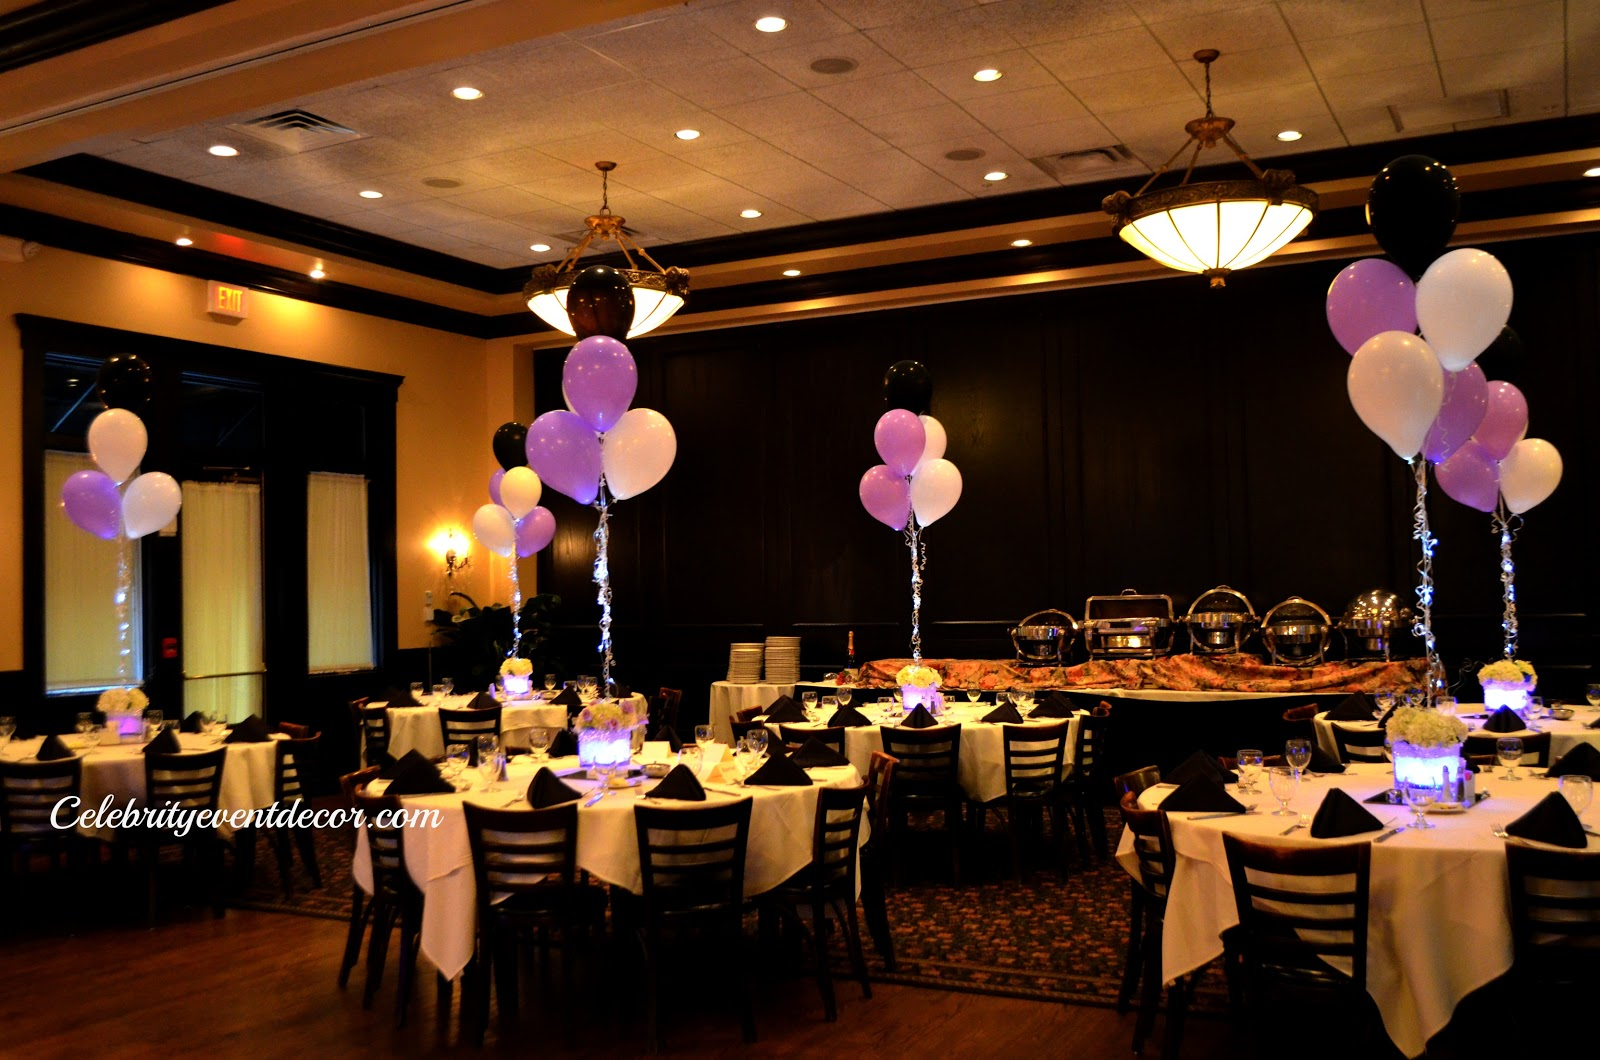 Celebrity event decor banquet hall llc for Balloon decoration ideas for sweet 16